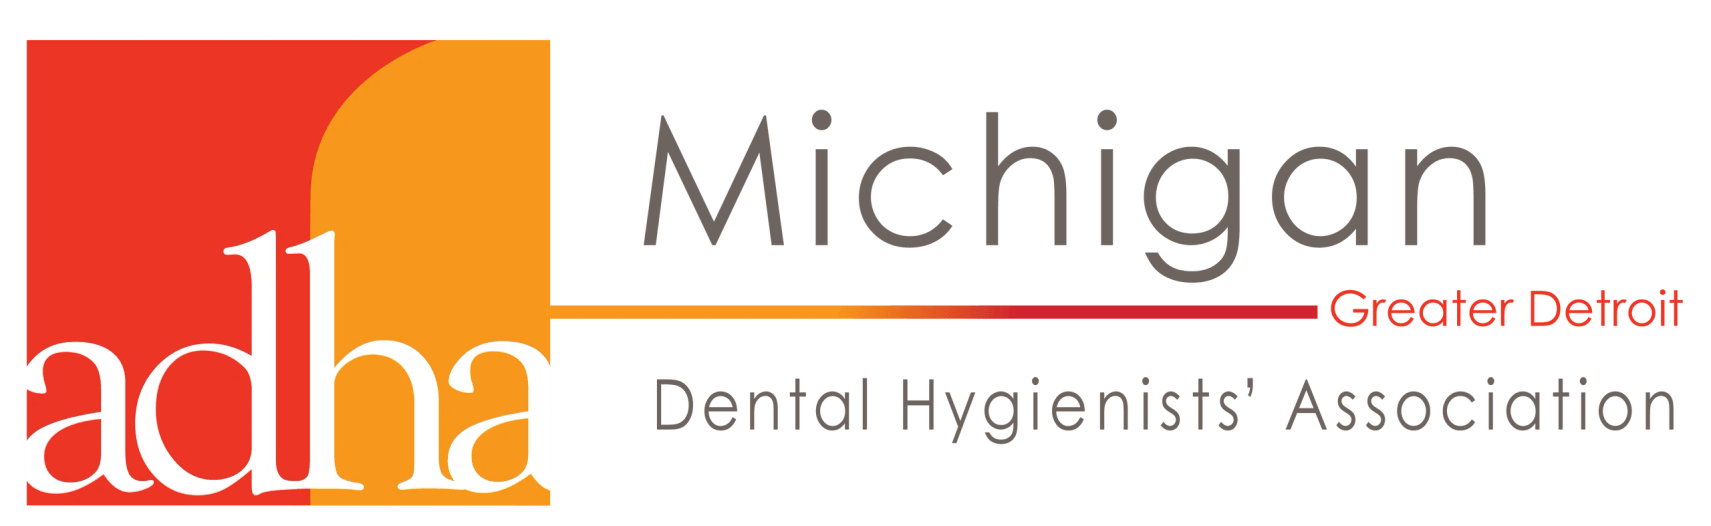 Greater Detroit Dental Hygienists' Association